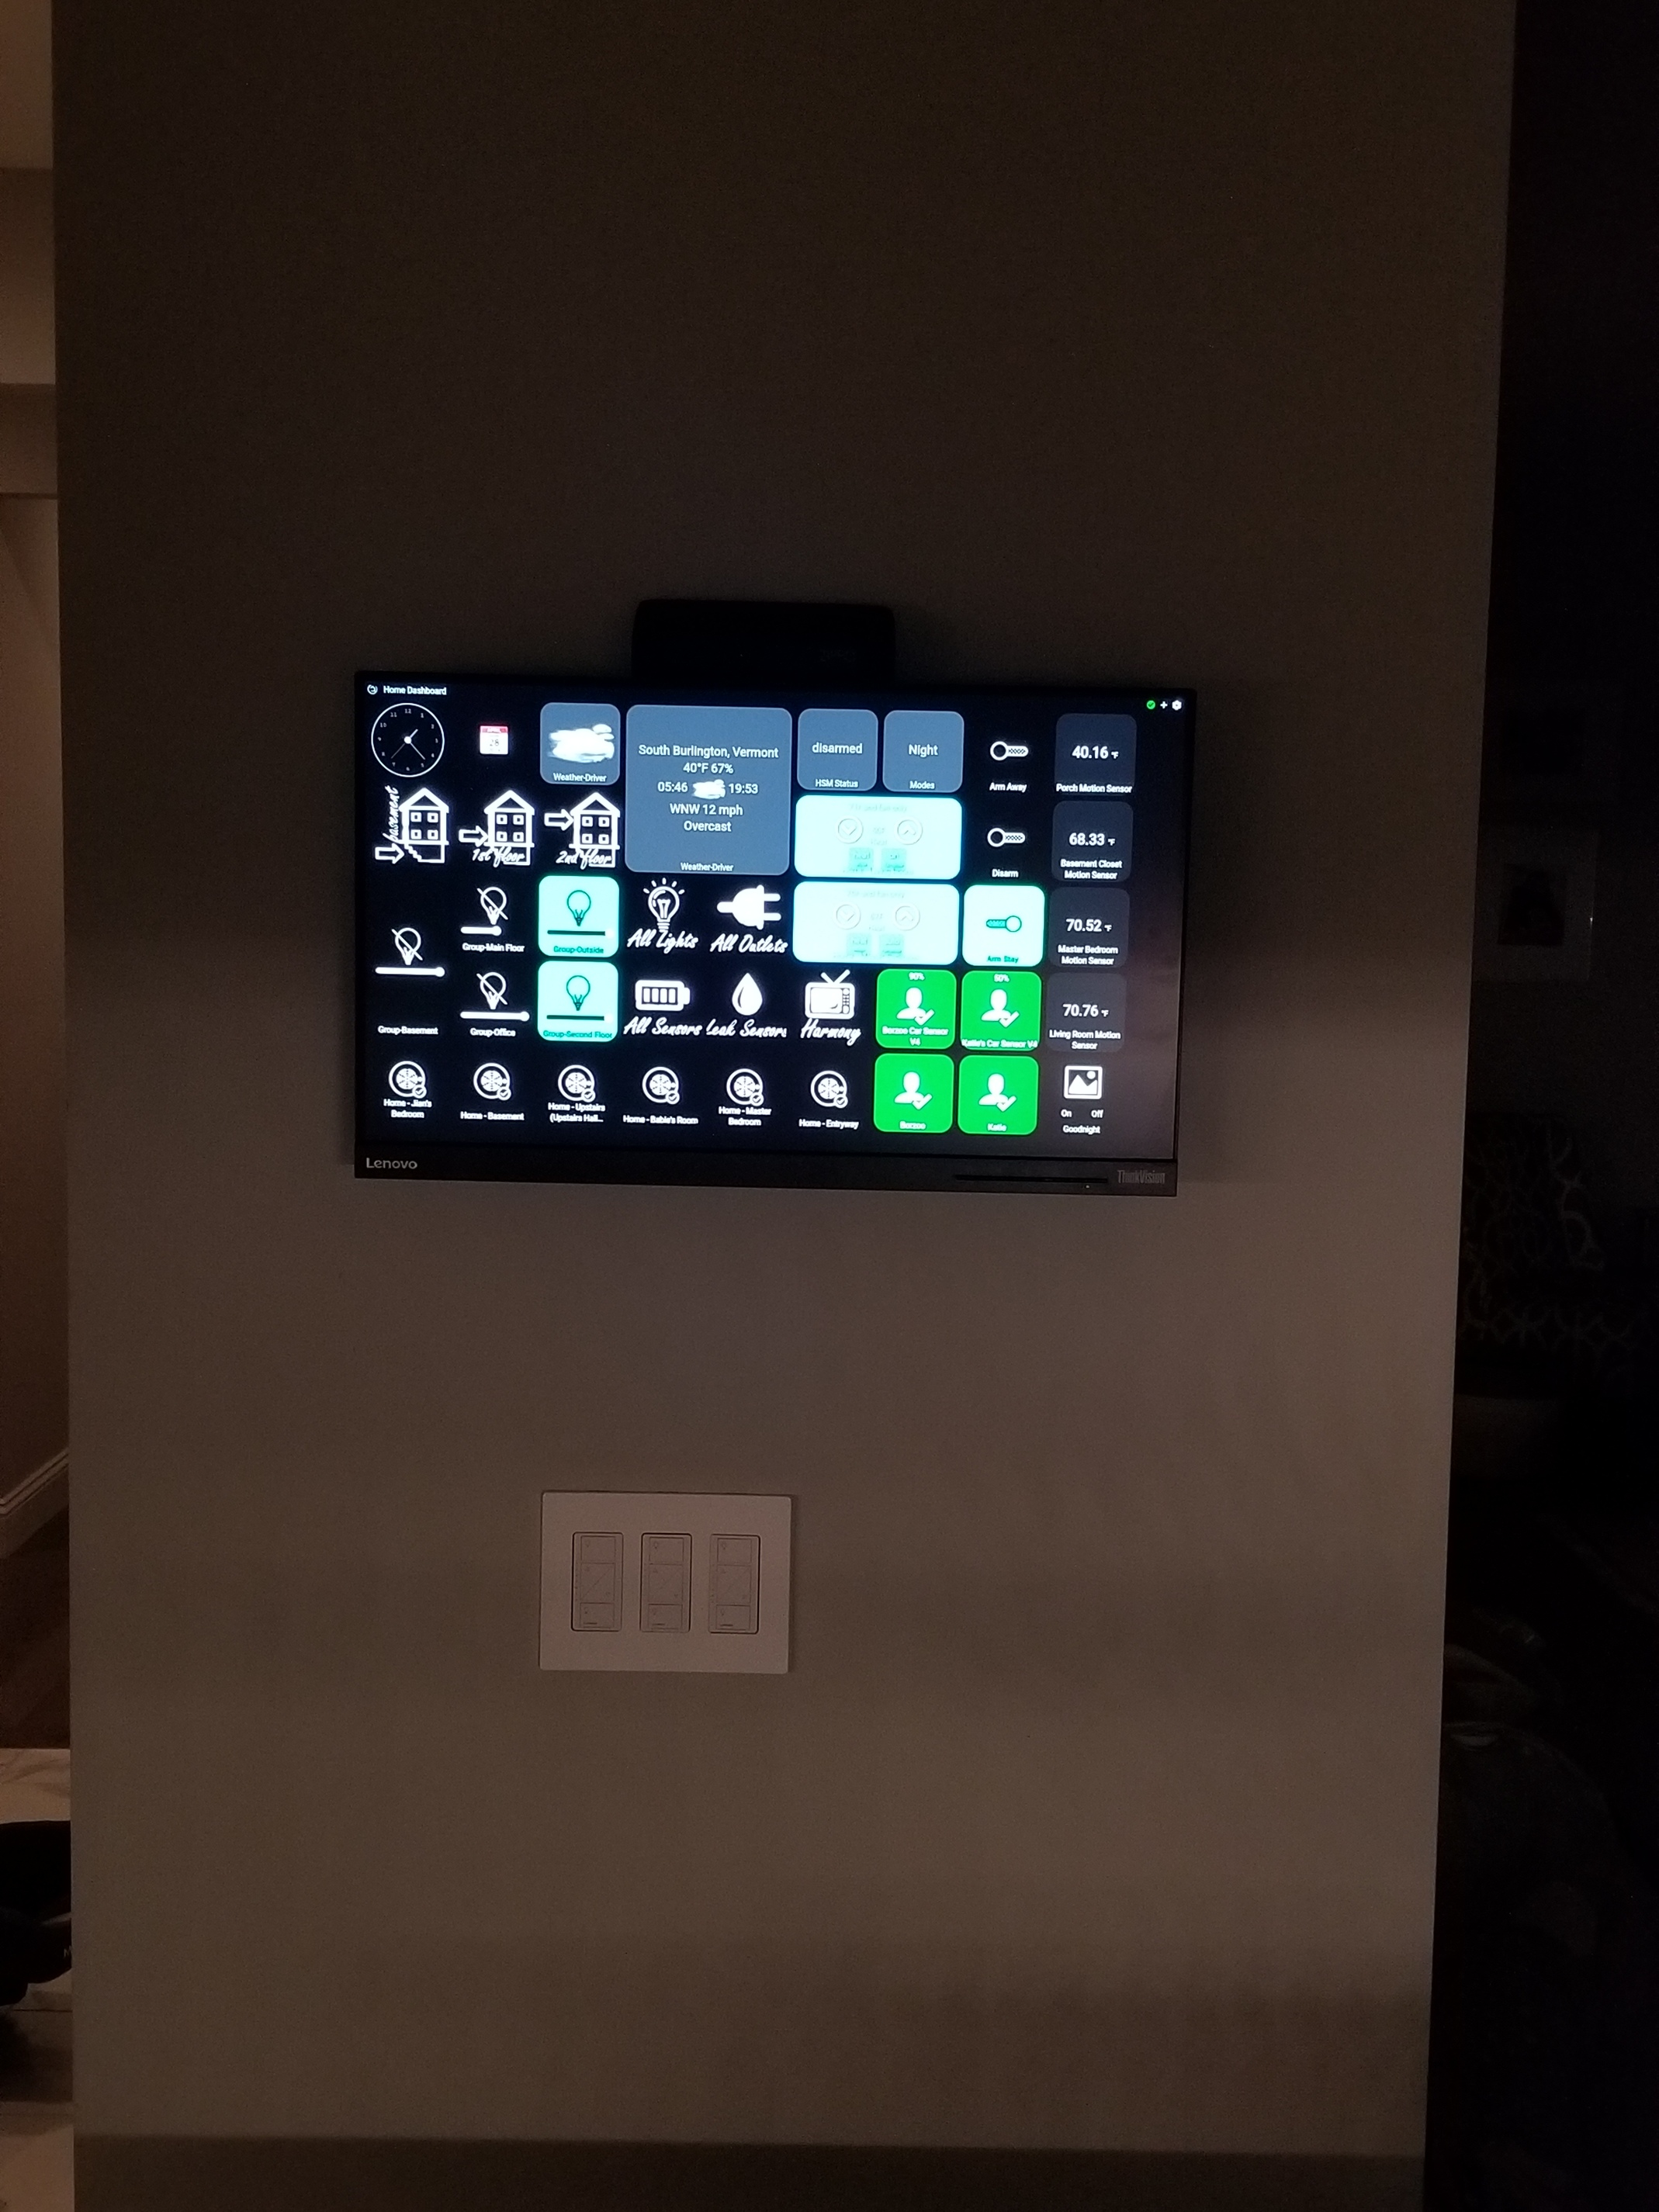 Show Off Your Dashboards! - Smart Homes - Hubitat